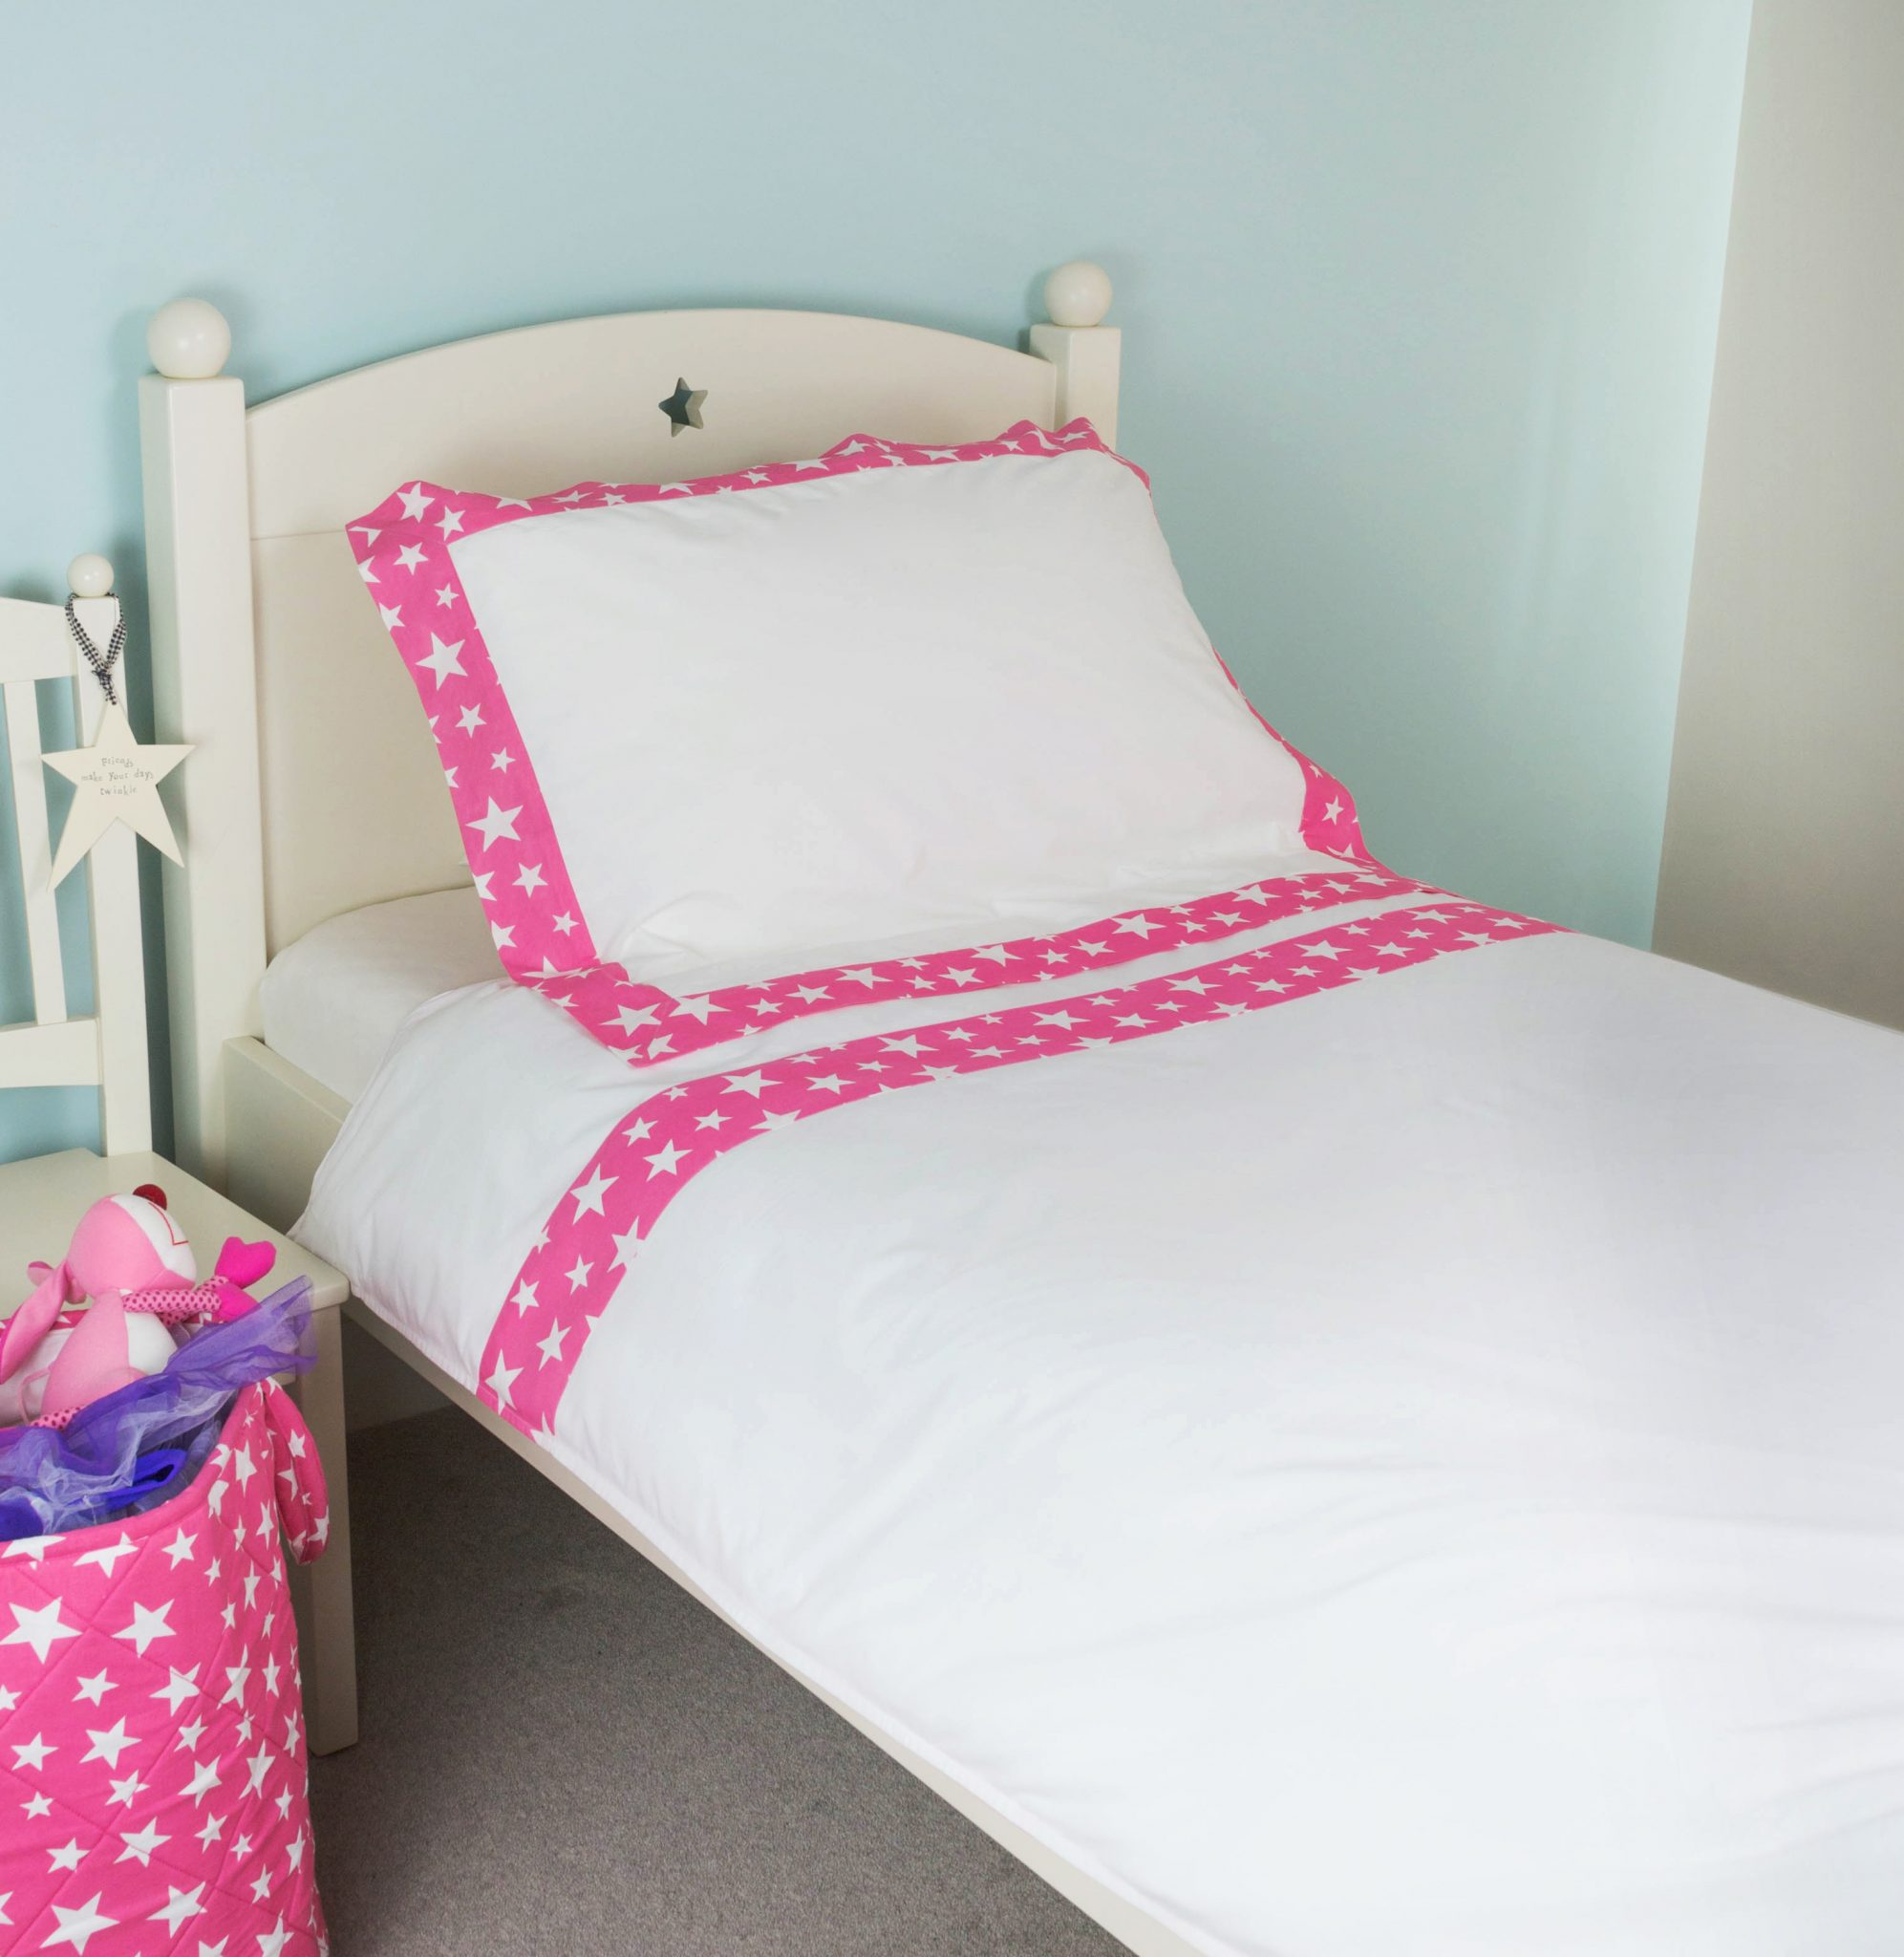 Kiddiewinkles Pink Start Children's cotton bedding set